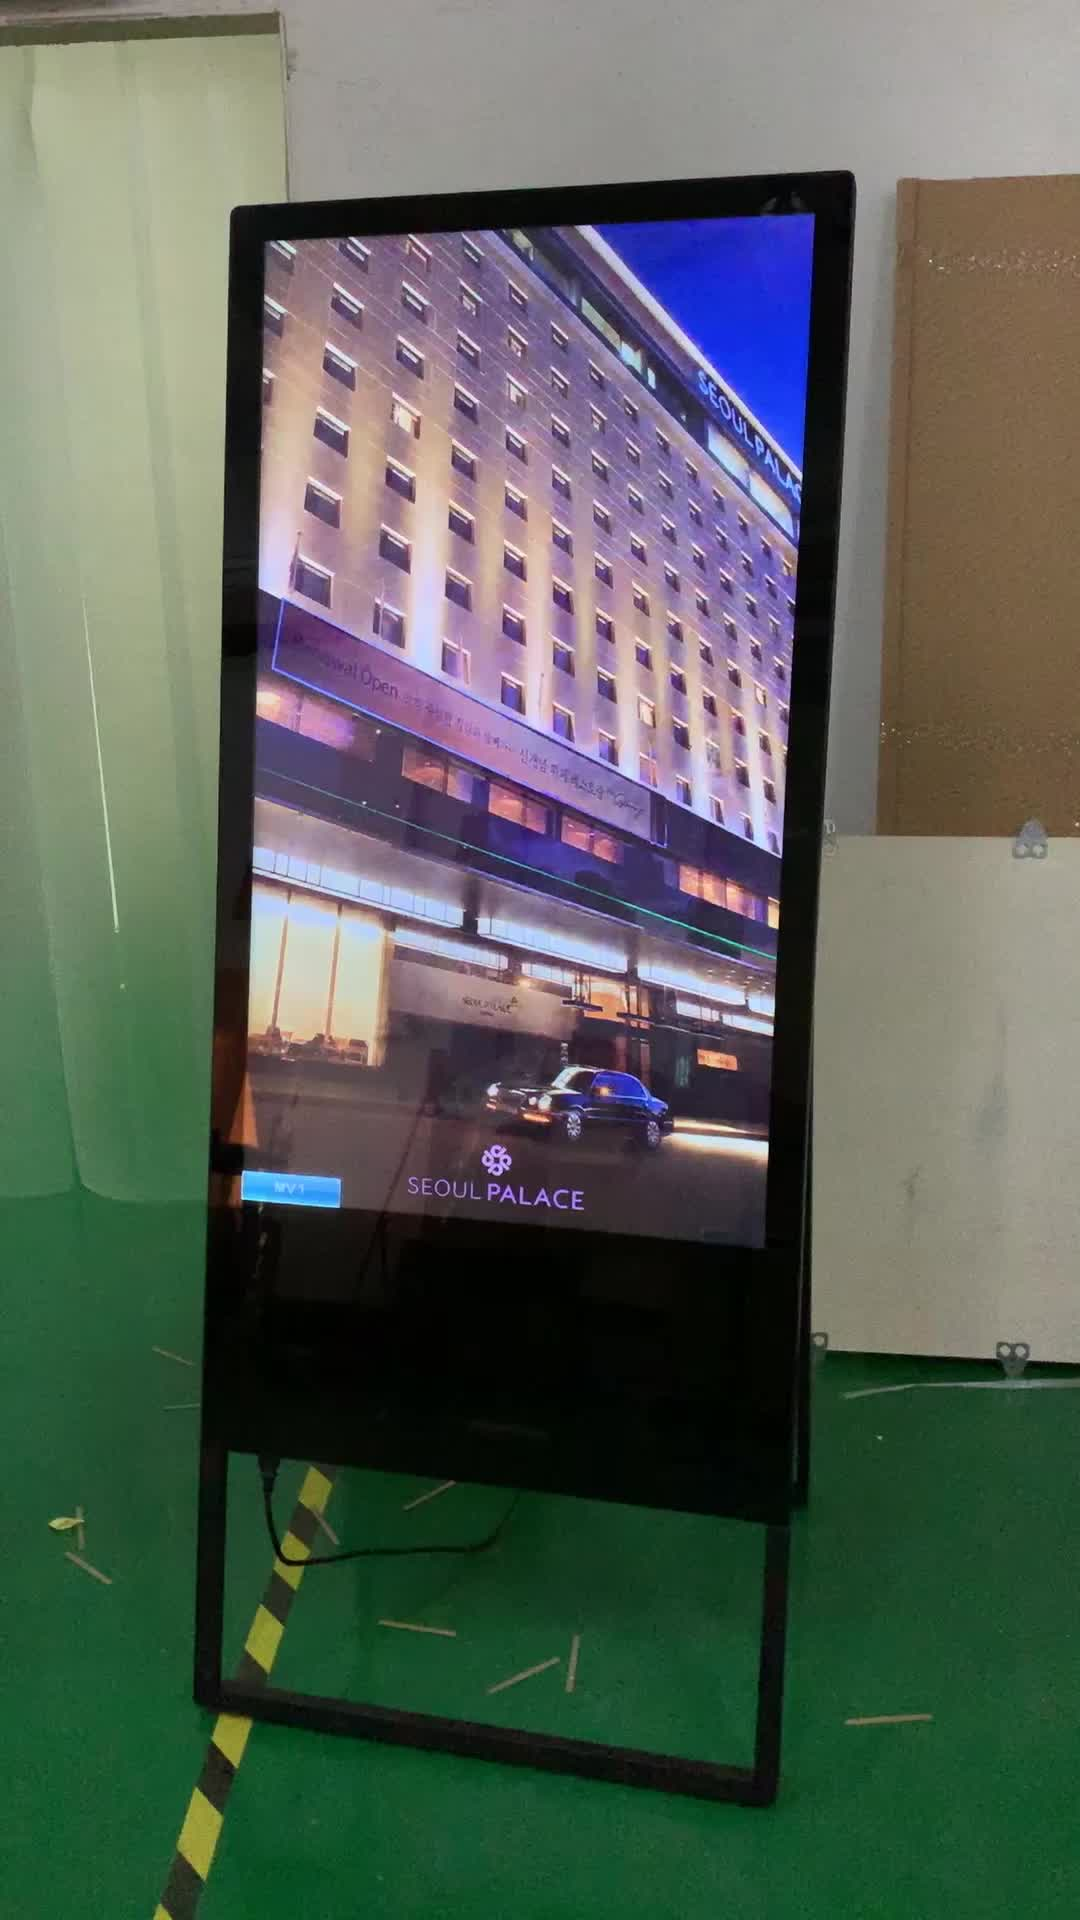 "Draagbare vloerstaande 43 ""inch LED LCD WIFI netwerk Android reclame board touchscreen PC kiosk self-service signage totem"